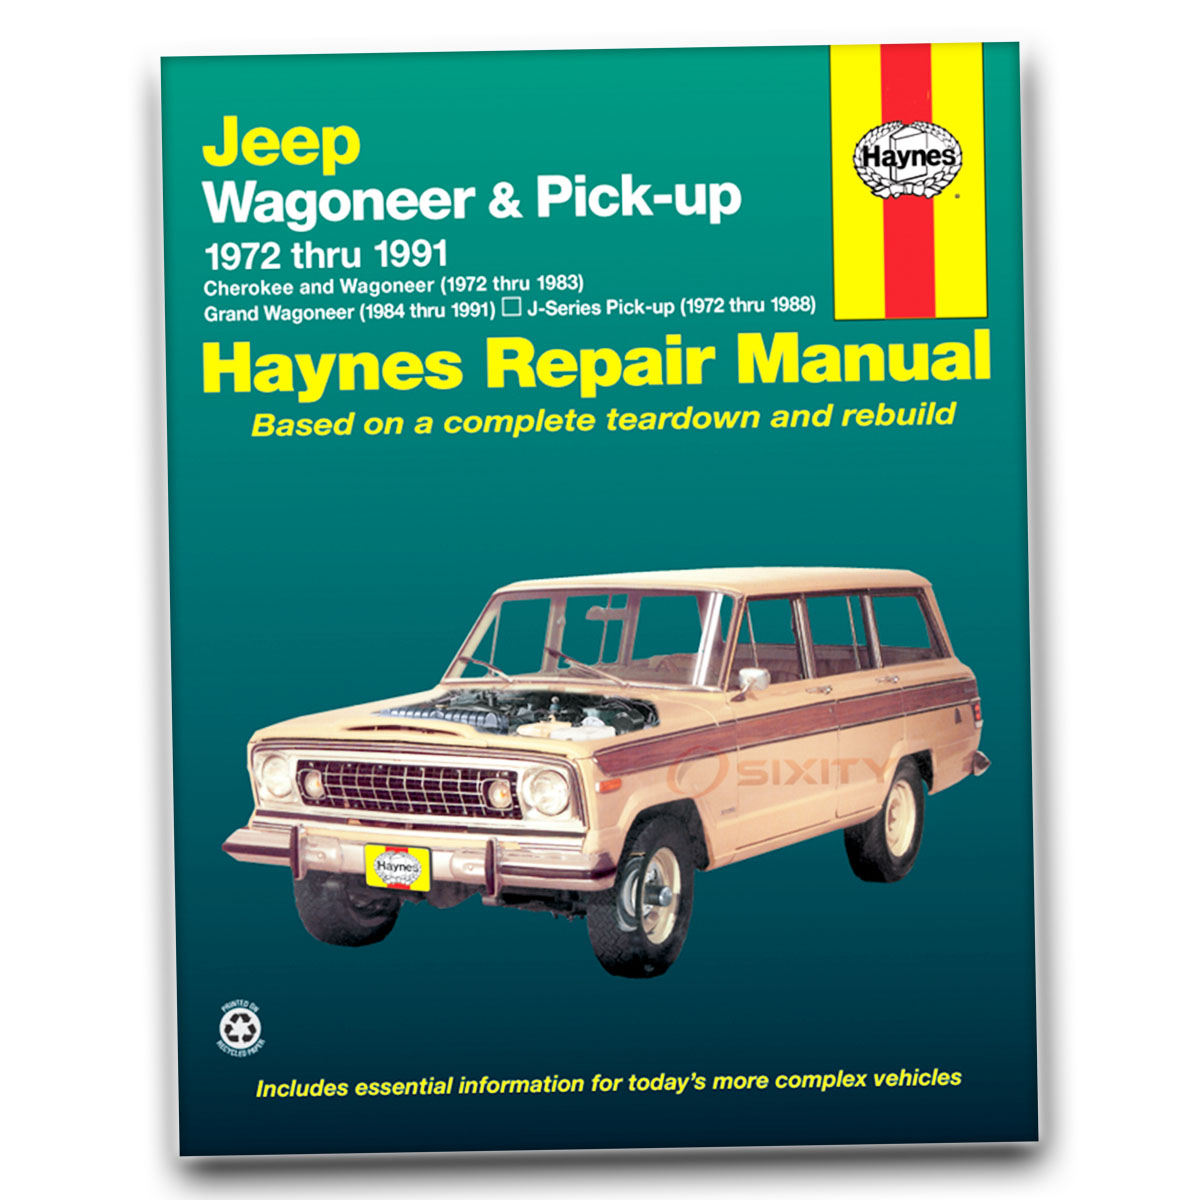 1988 Jeep Grand Wagoneer Wiring Diagram List Of Schematic Circuit 89 Cherokee Harness 1984 Page 5 And Rh Rivcas Org 1990